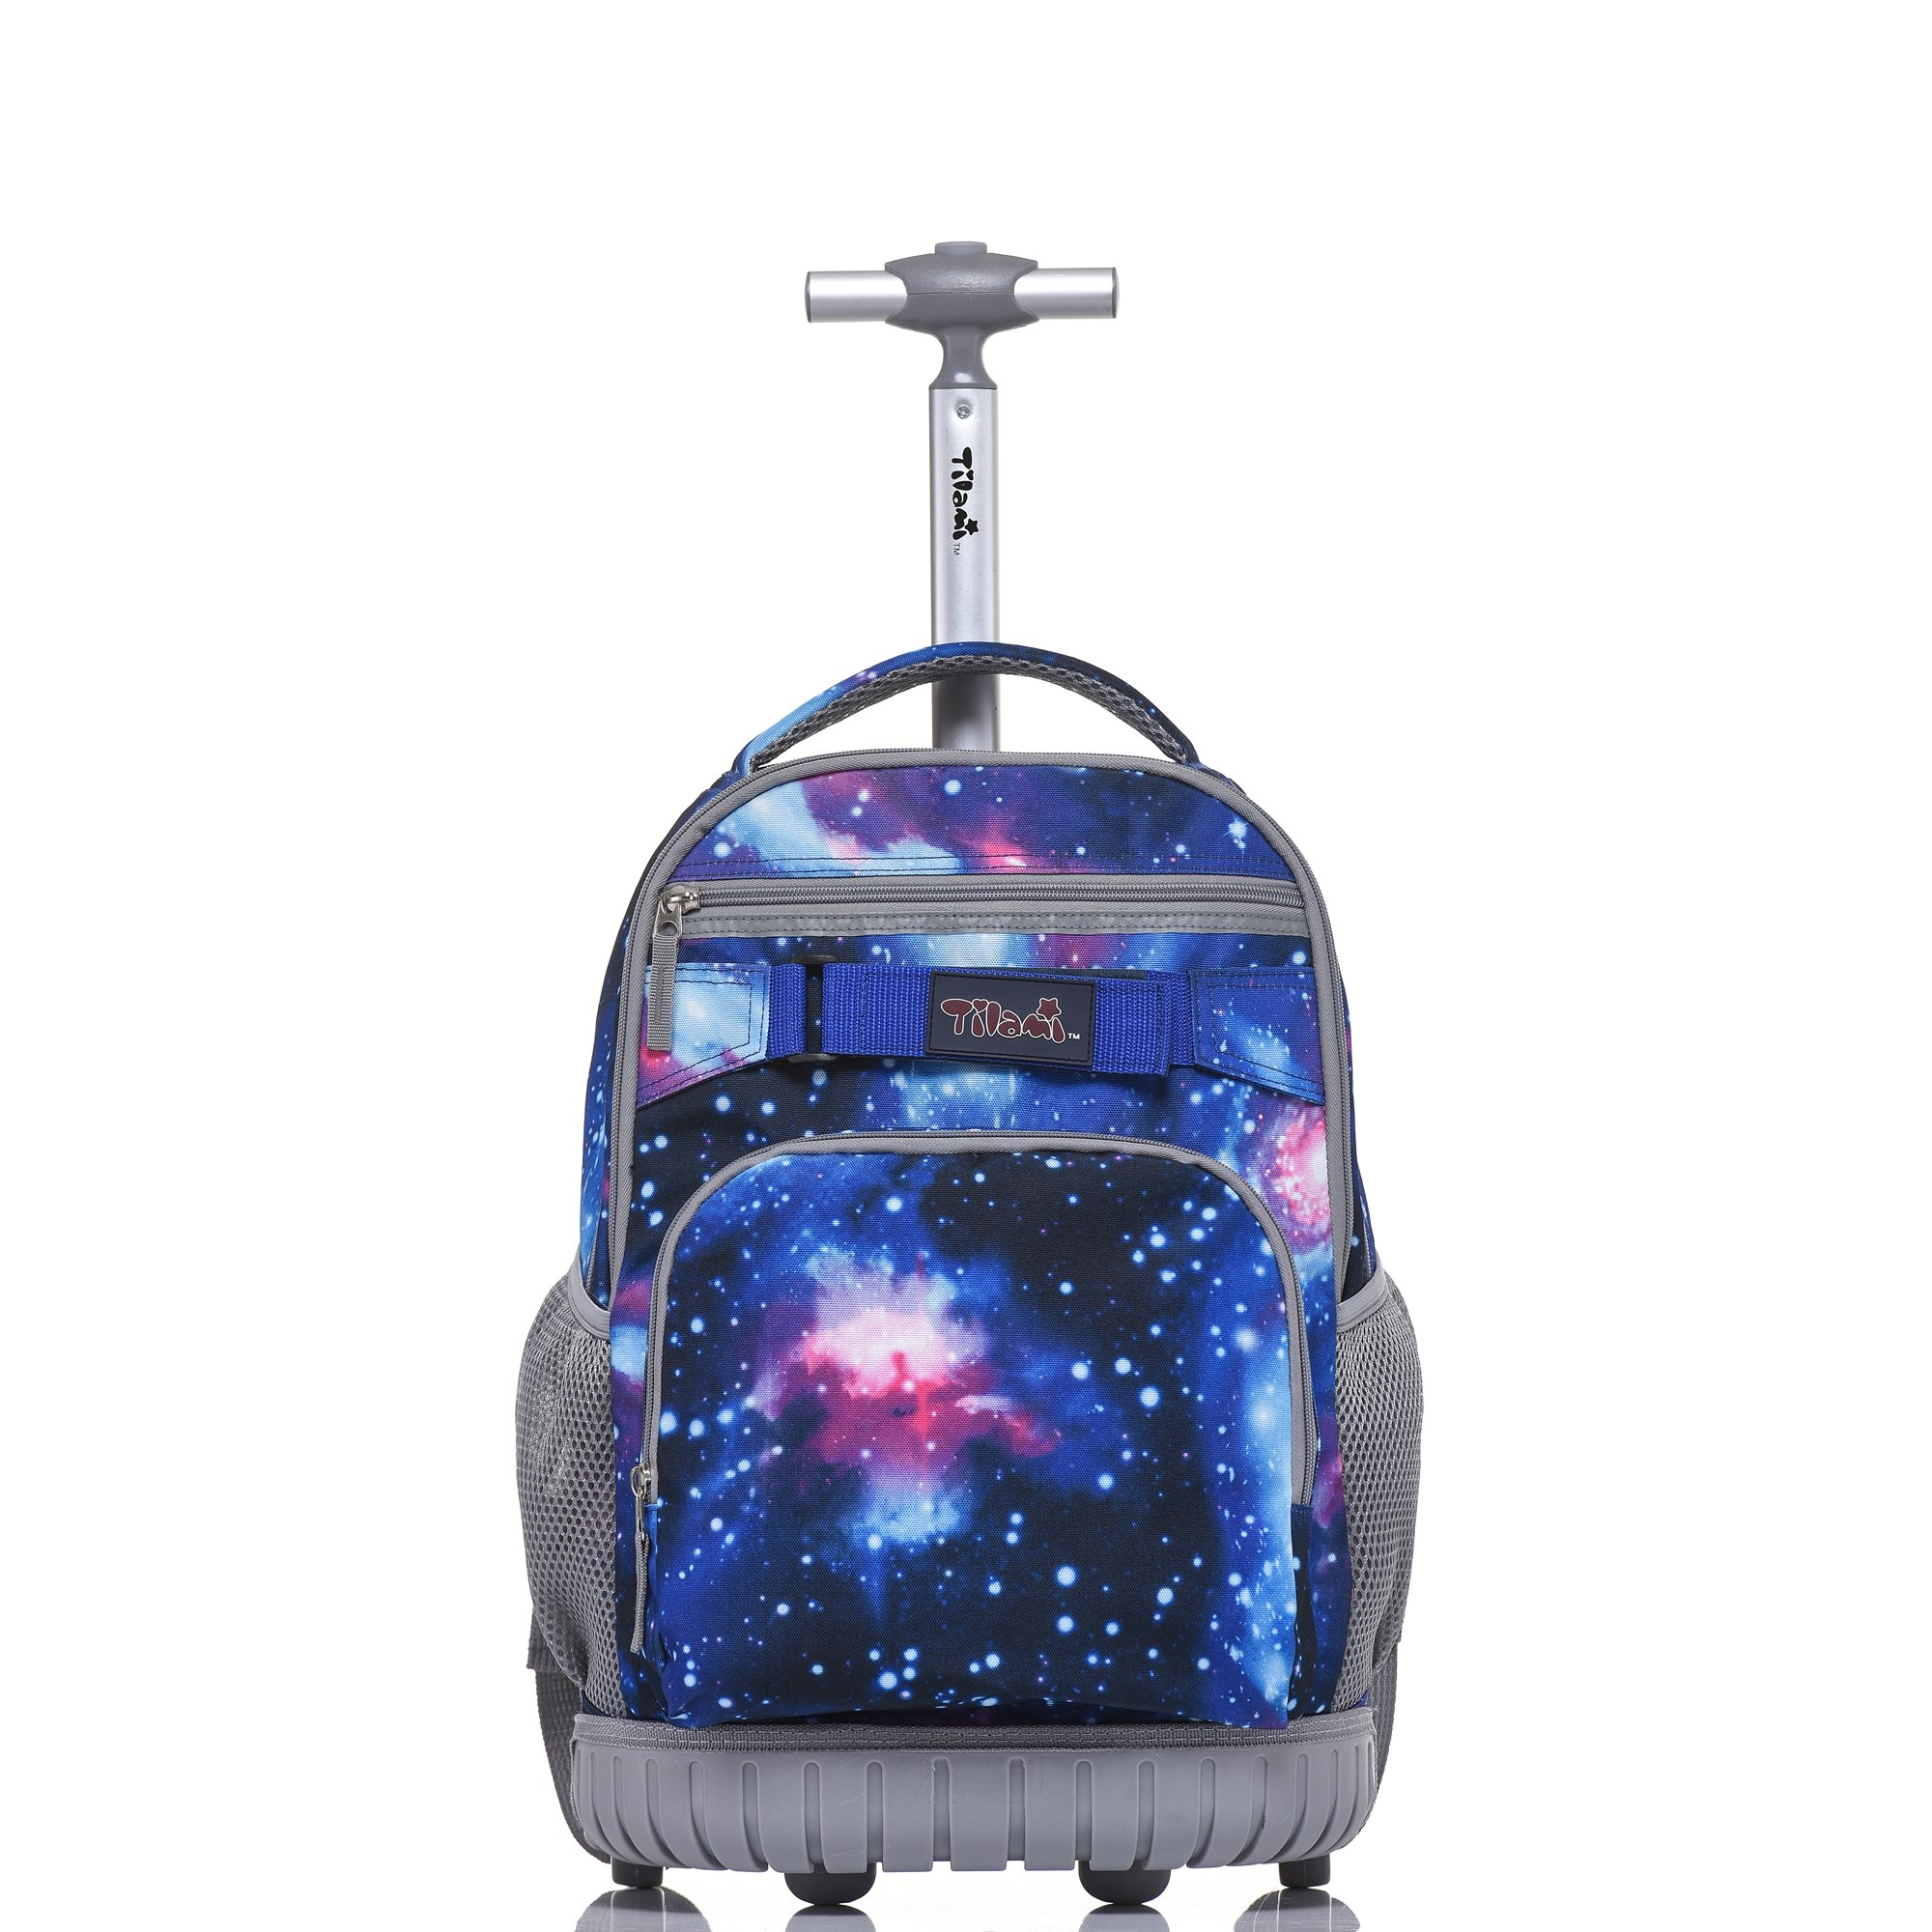 Tilami Rolling Backpack 18 inch for School Travel, Blue Galaxy by Tilami